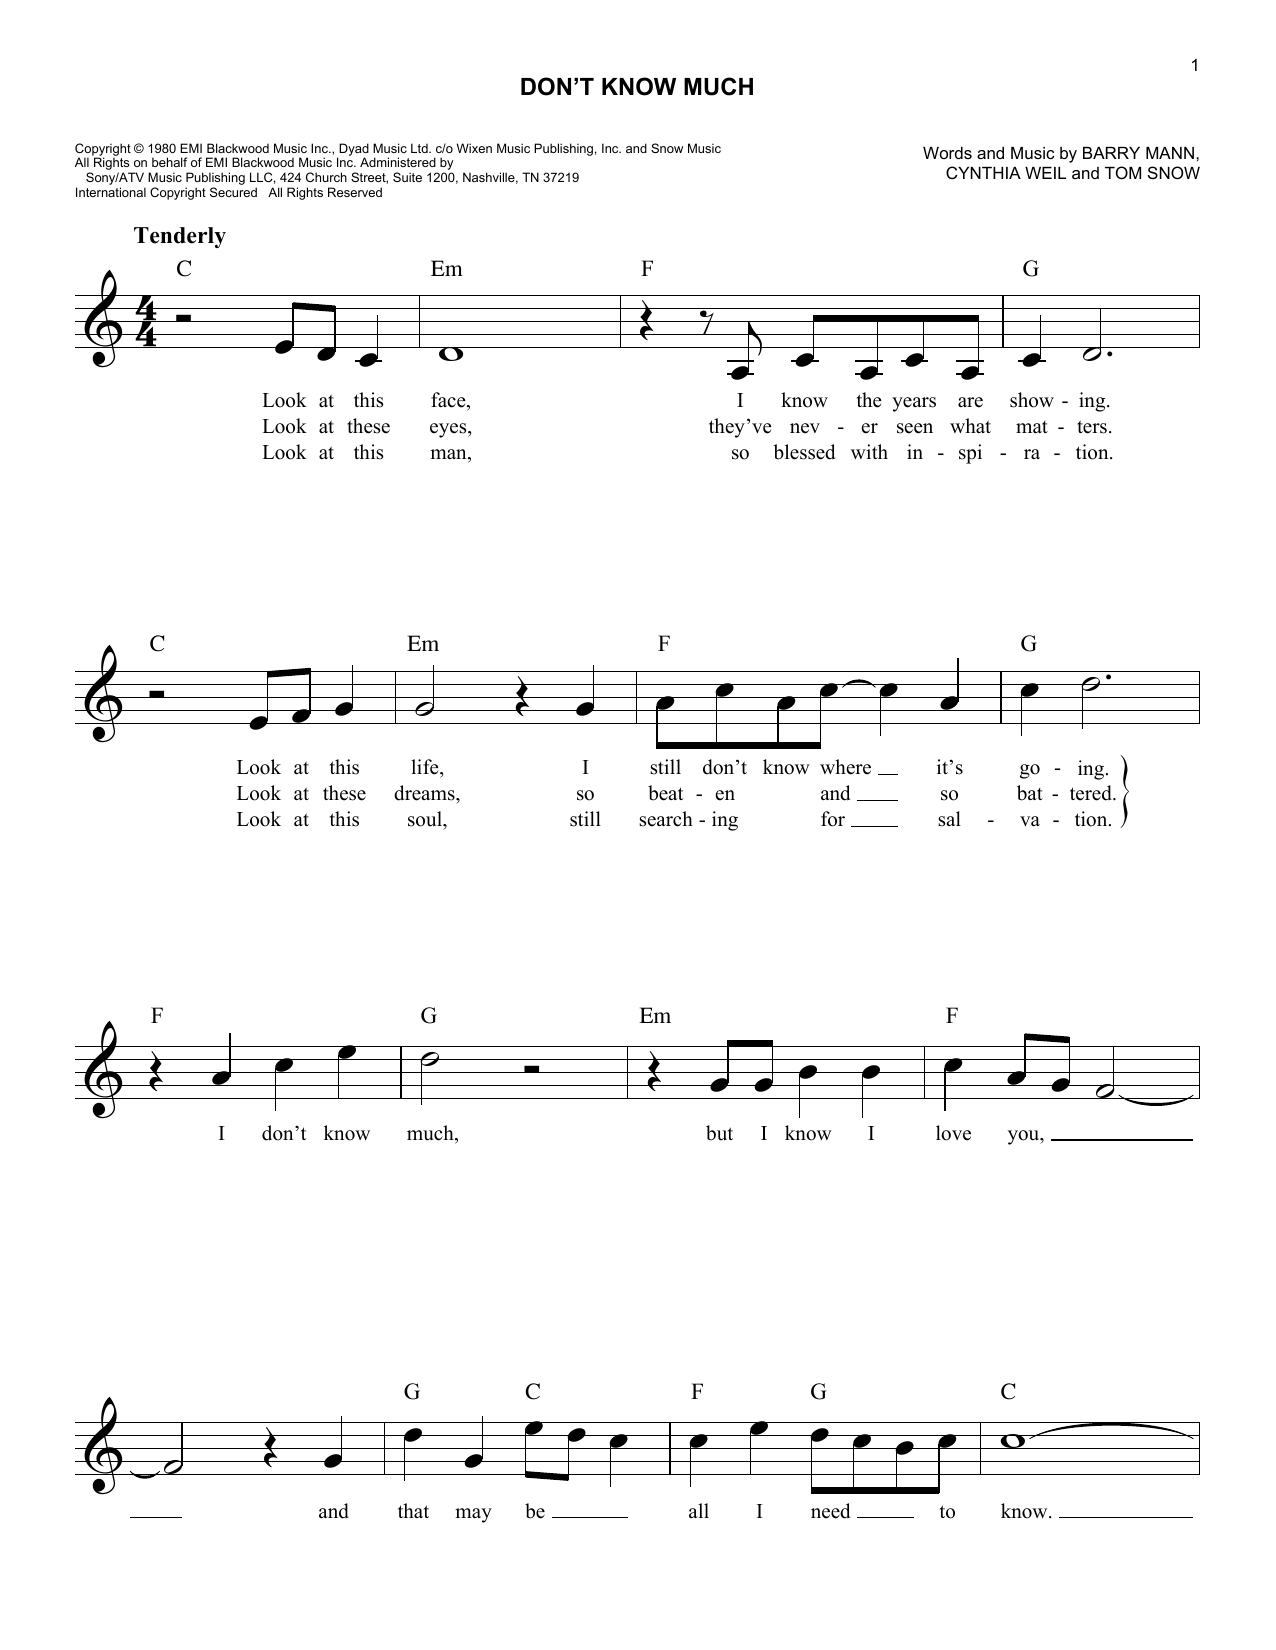 Aaron Neville and Linda Ronstadt Don't Know Much sheet music notes and chords. Download Printable PDF.